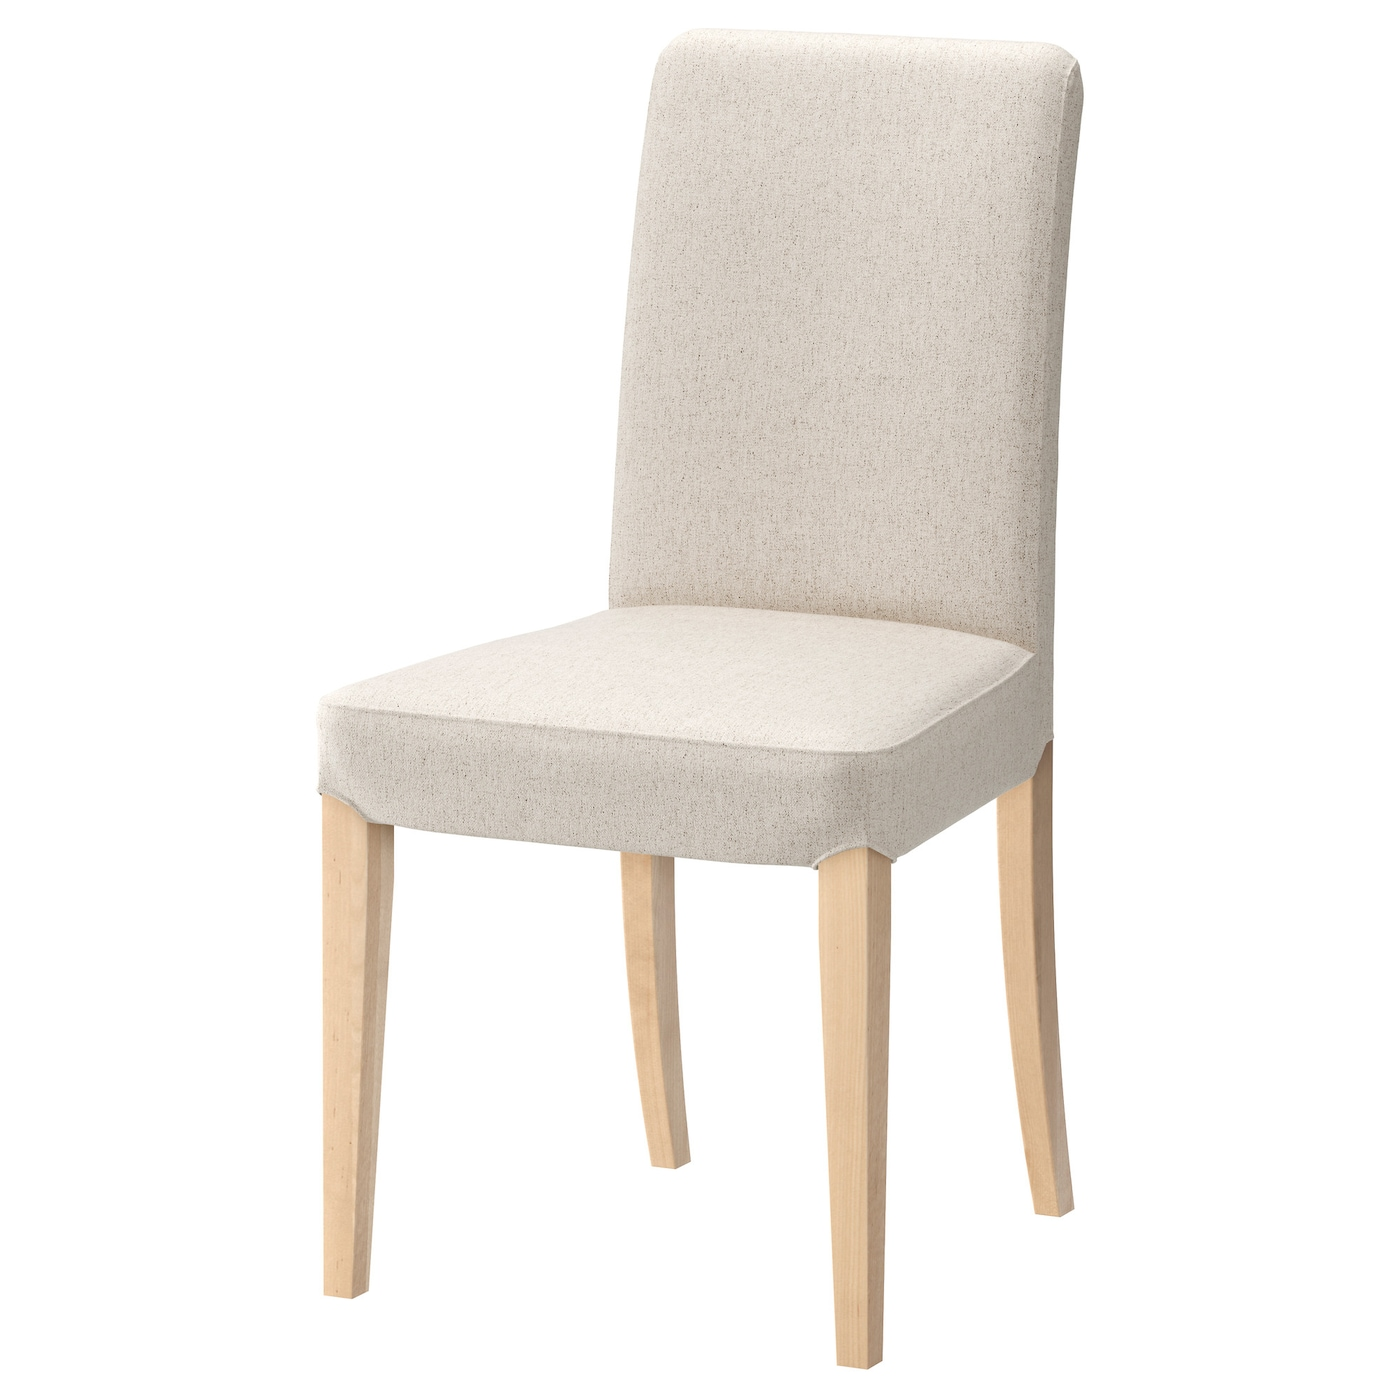 Henriksdal chair birch linneryd natural ikea - Vieille chaise en bois ...